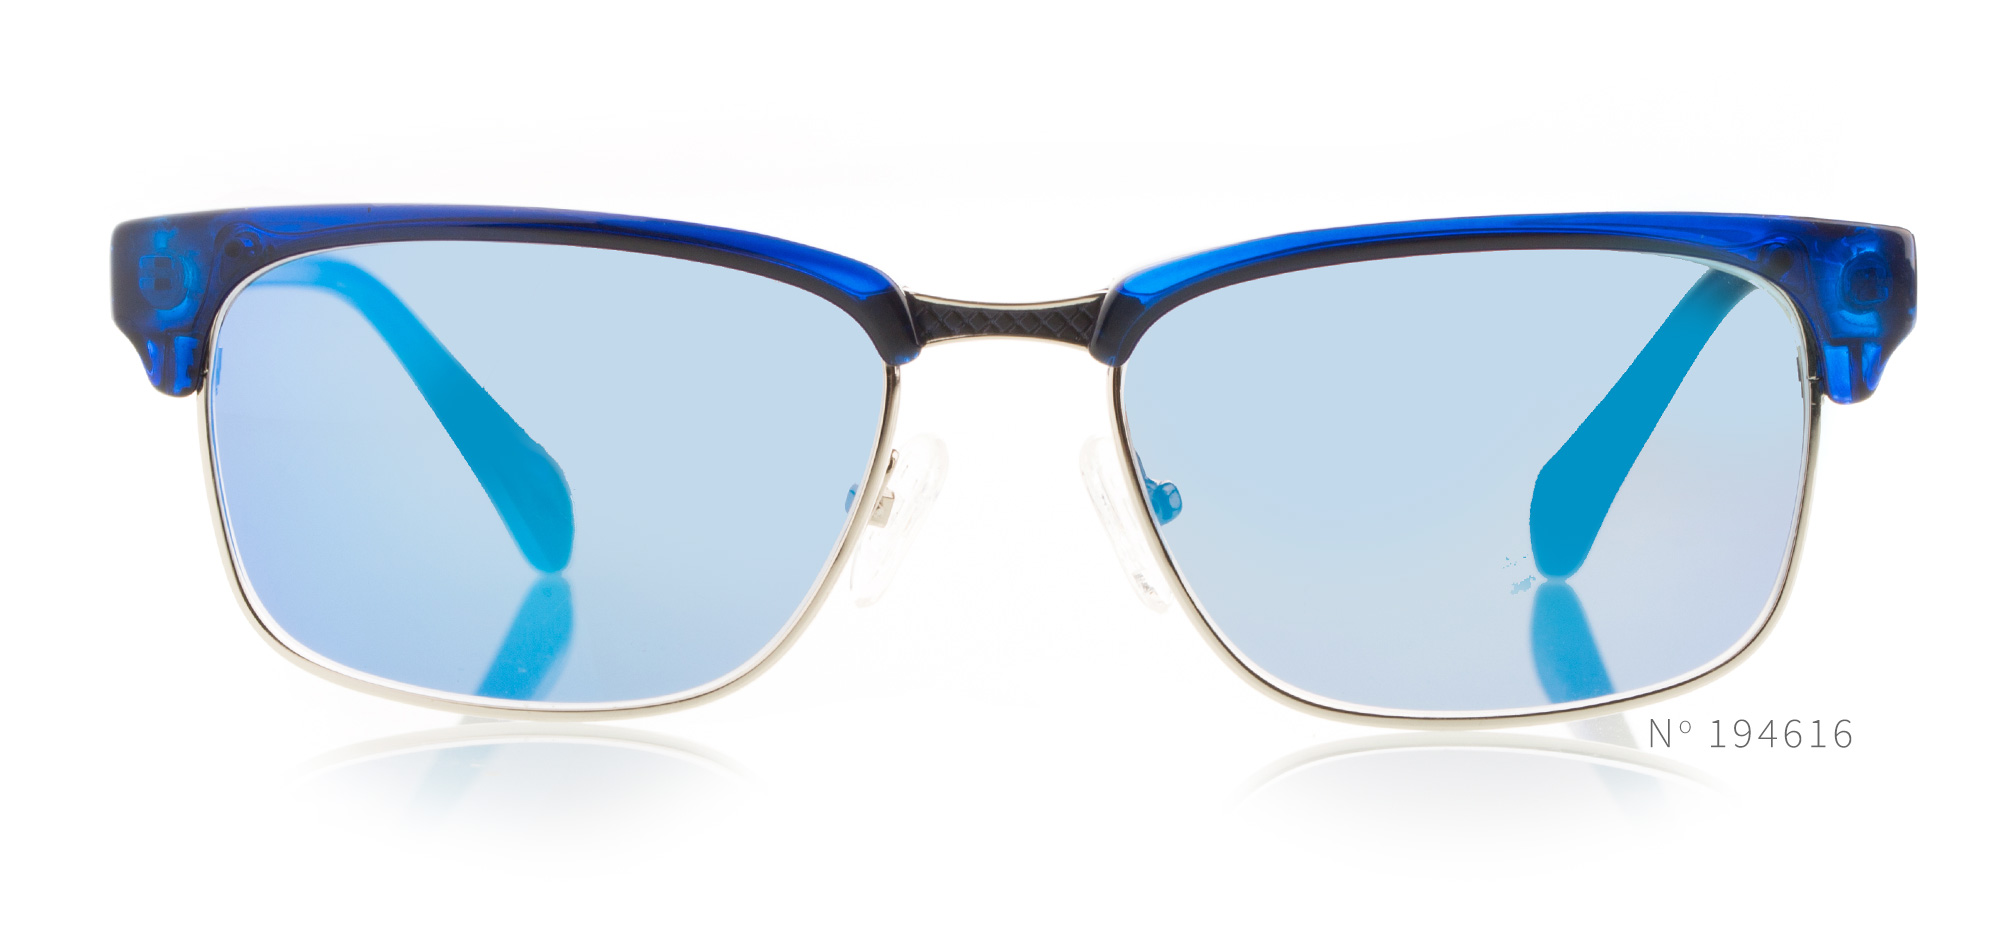 blue-browline-sunglasses-194616